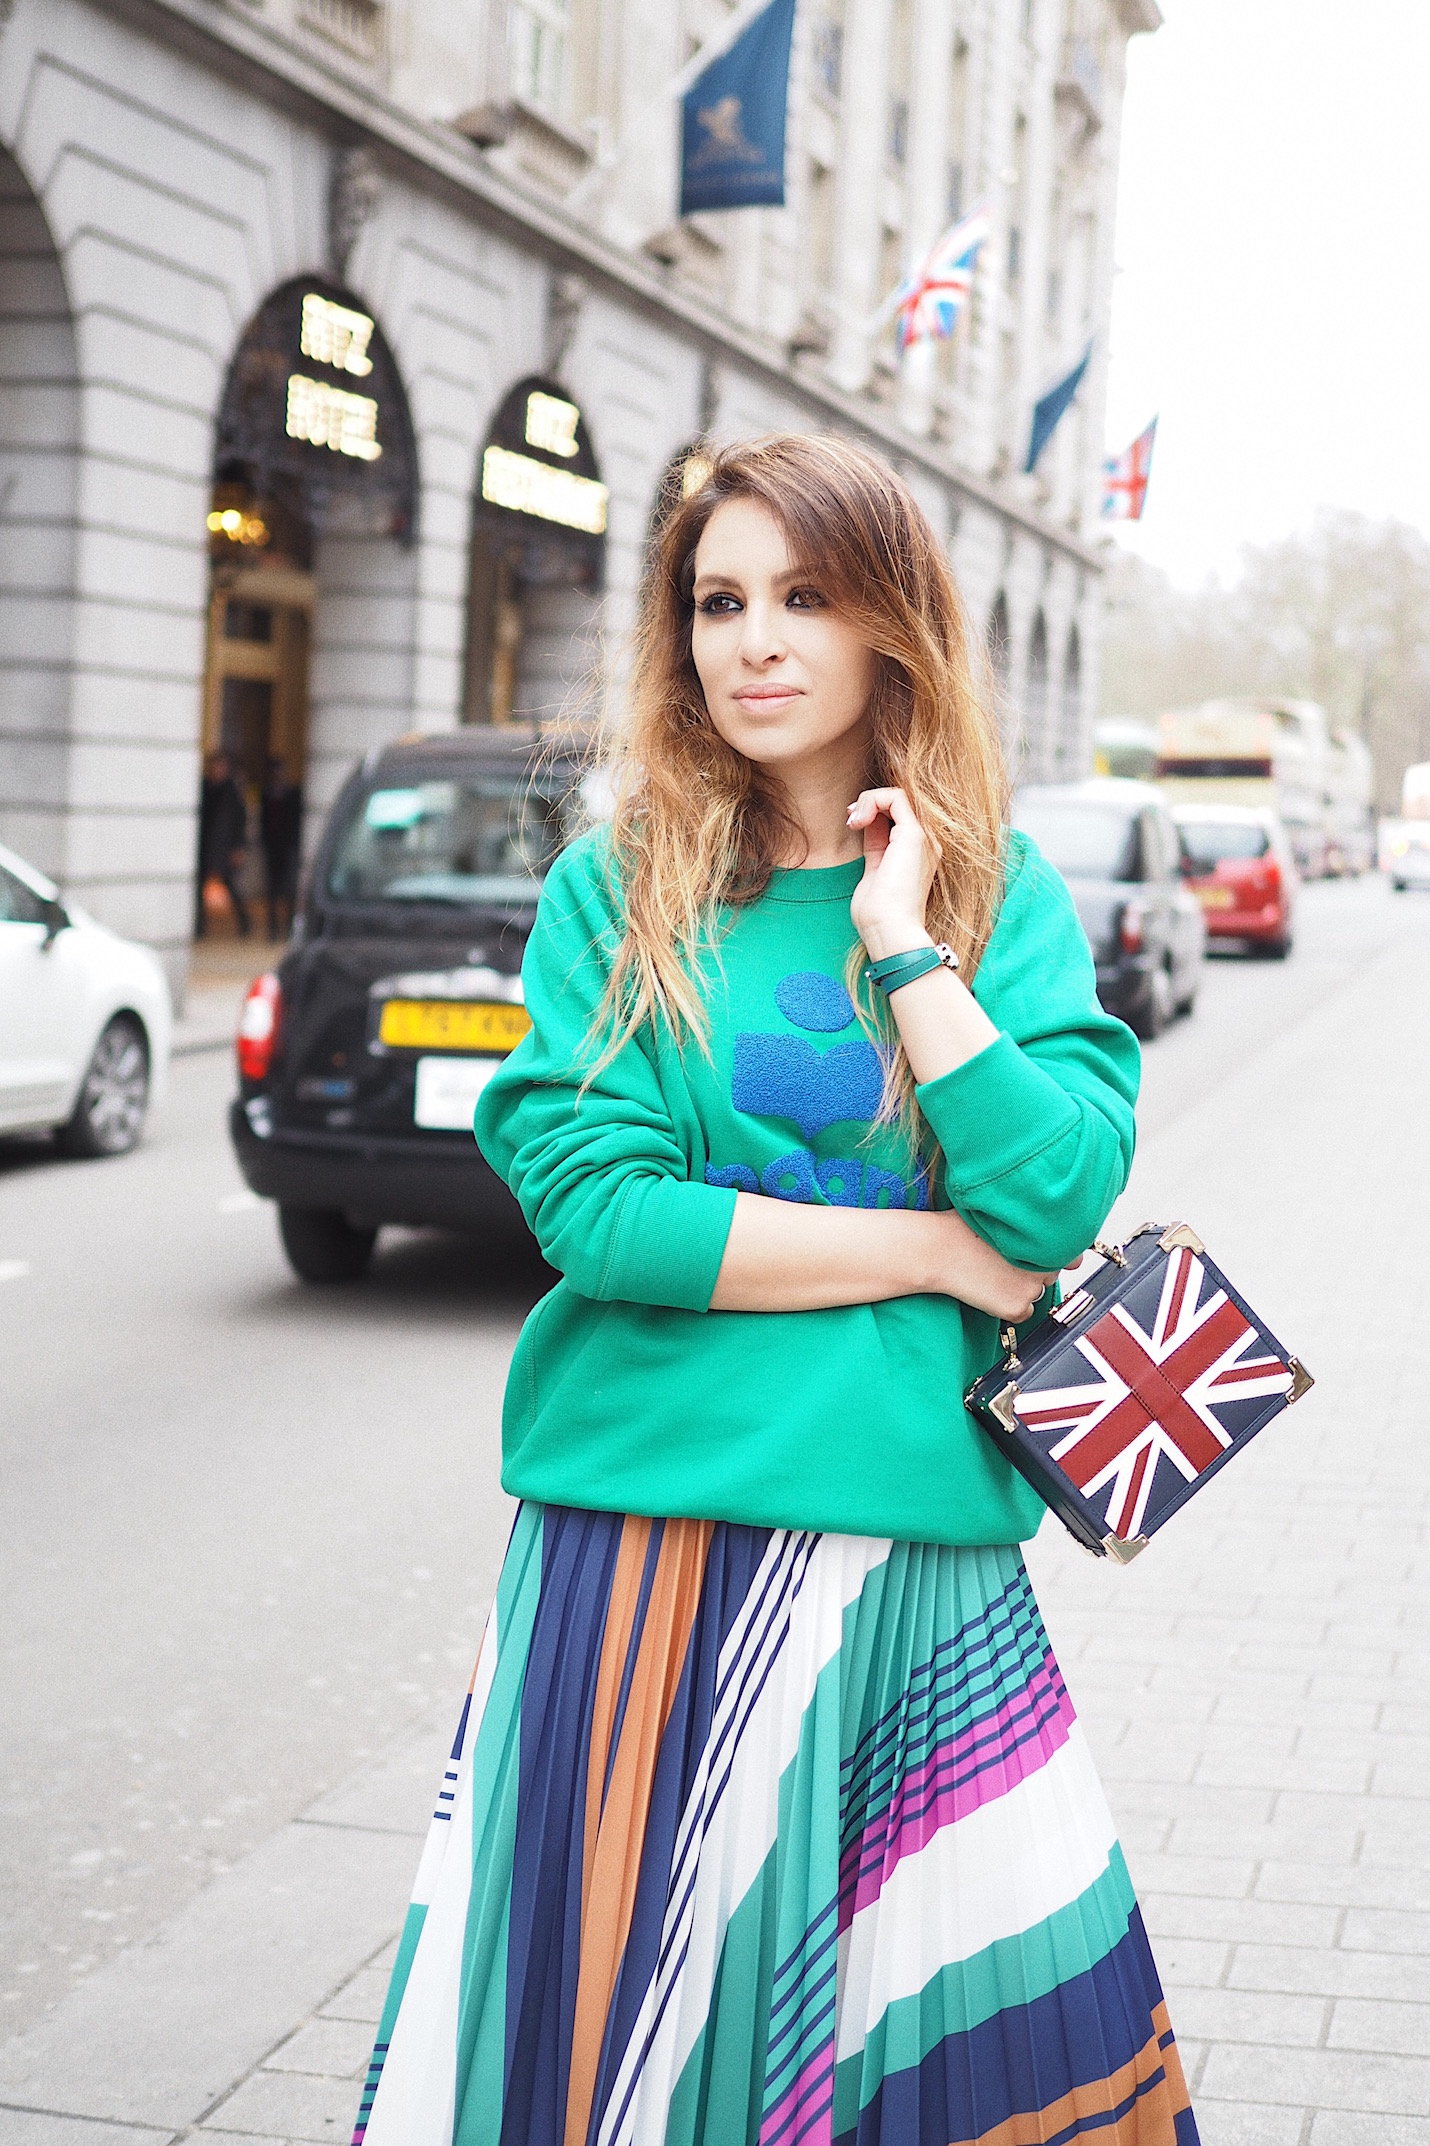 aspinal of london union jack bag street style london